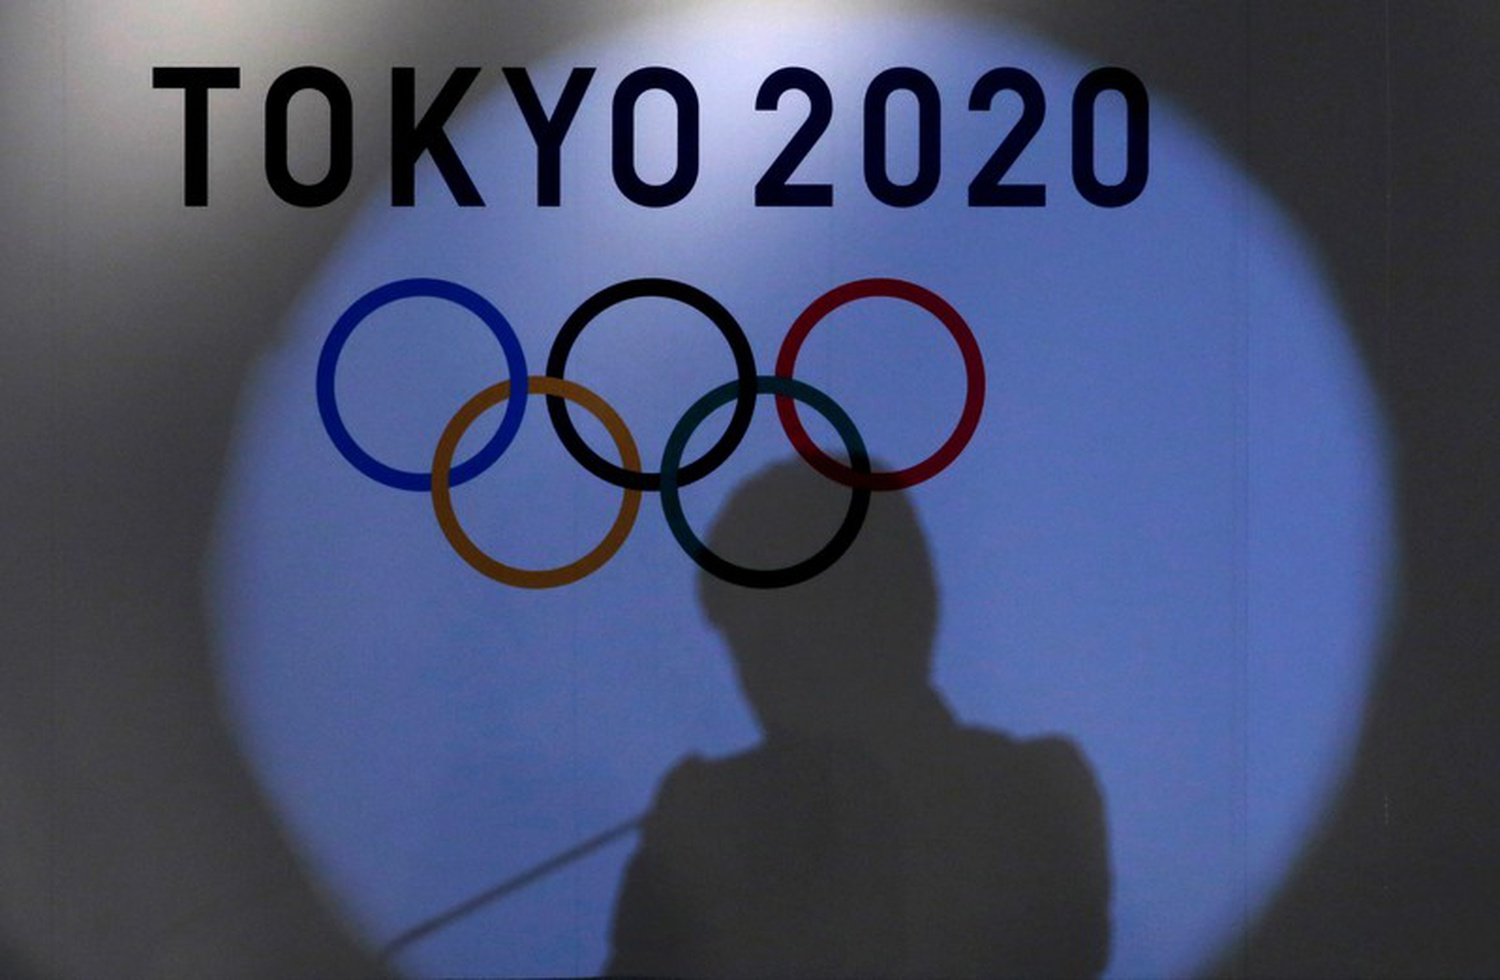 Olympics: Sony wins Tokyo 2020 broadcast rights in India, subcontinent